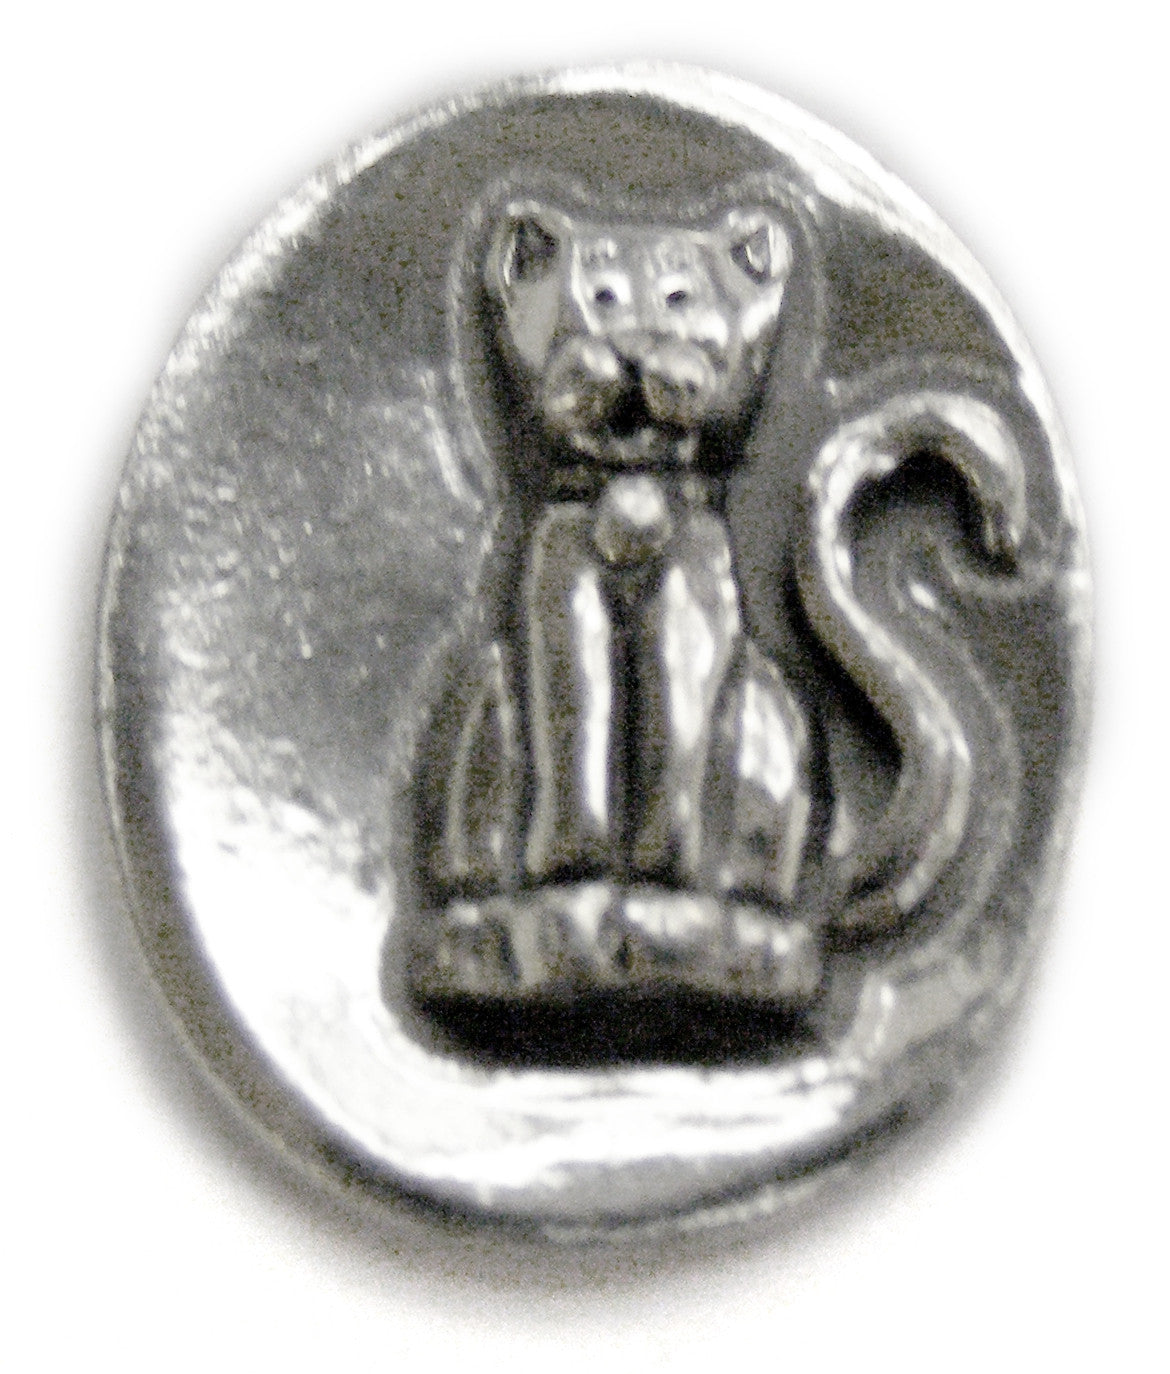 Basic Spirit Cat / Purrfect Pocket Token - Pi Style Boutique - Basic Spirit